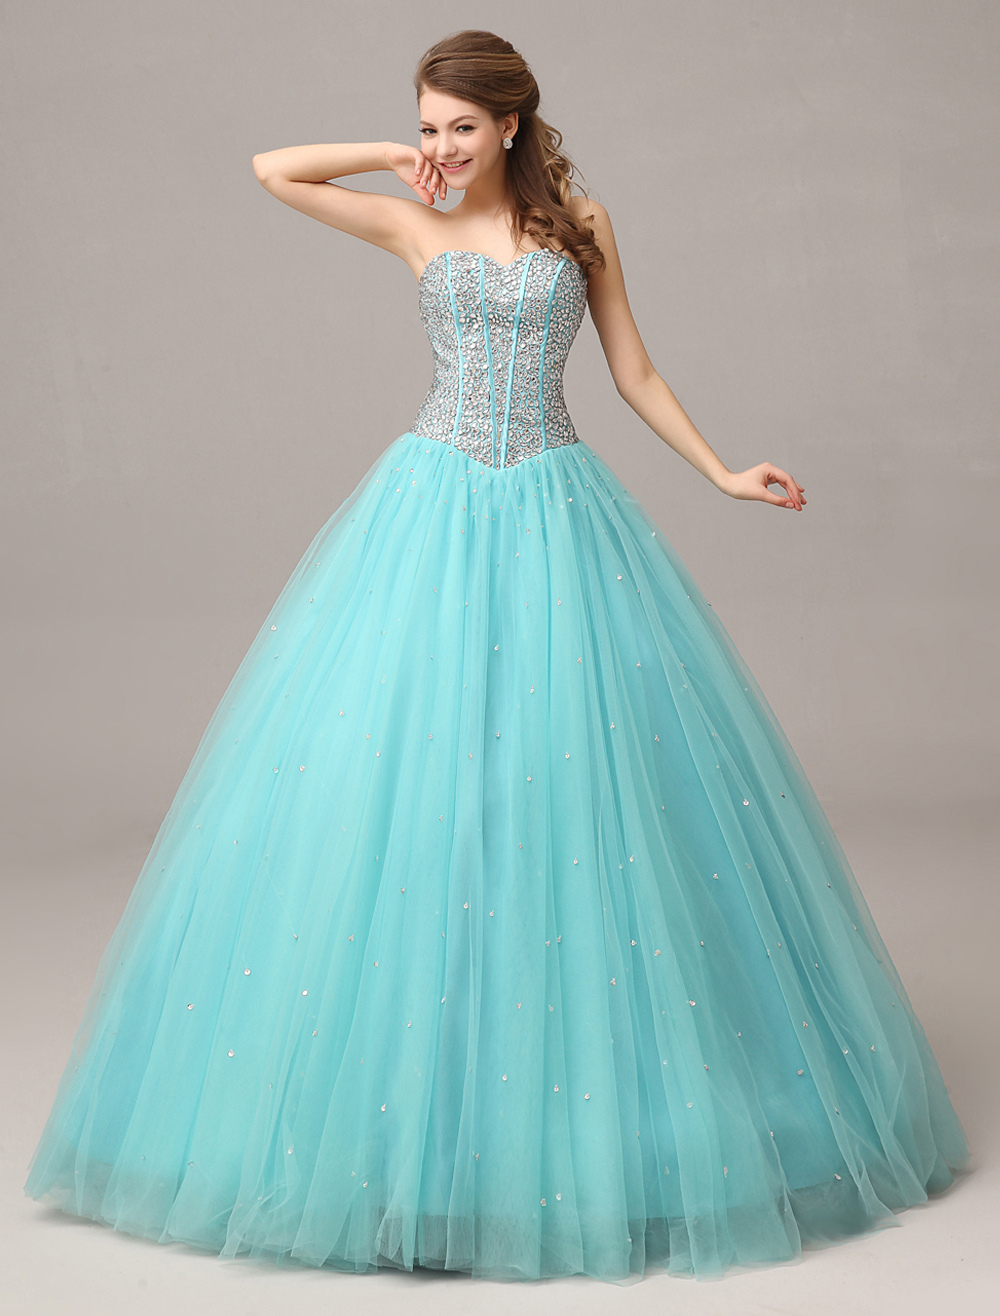 Tulle Ball Gown Mint Green Sweetheart Neck Prom Dress Rhinestone Backless Floor Length Party Dress (Wedding Prom Dresses) photo